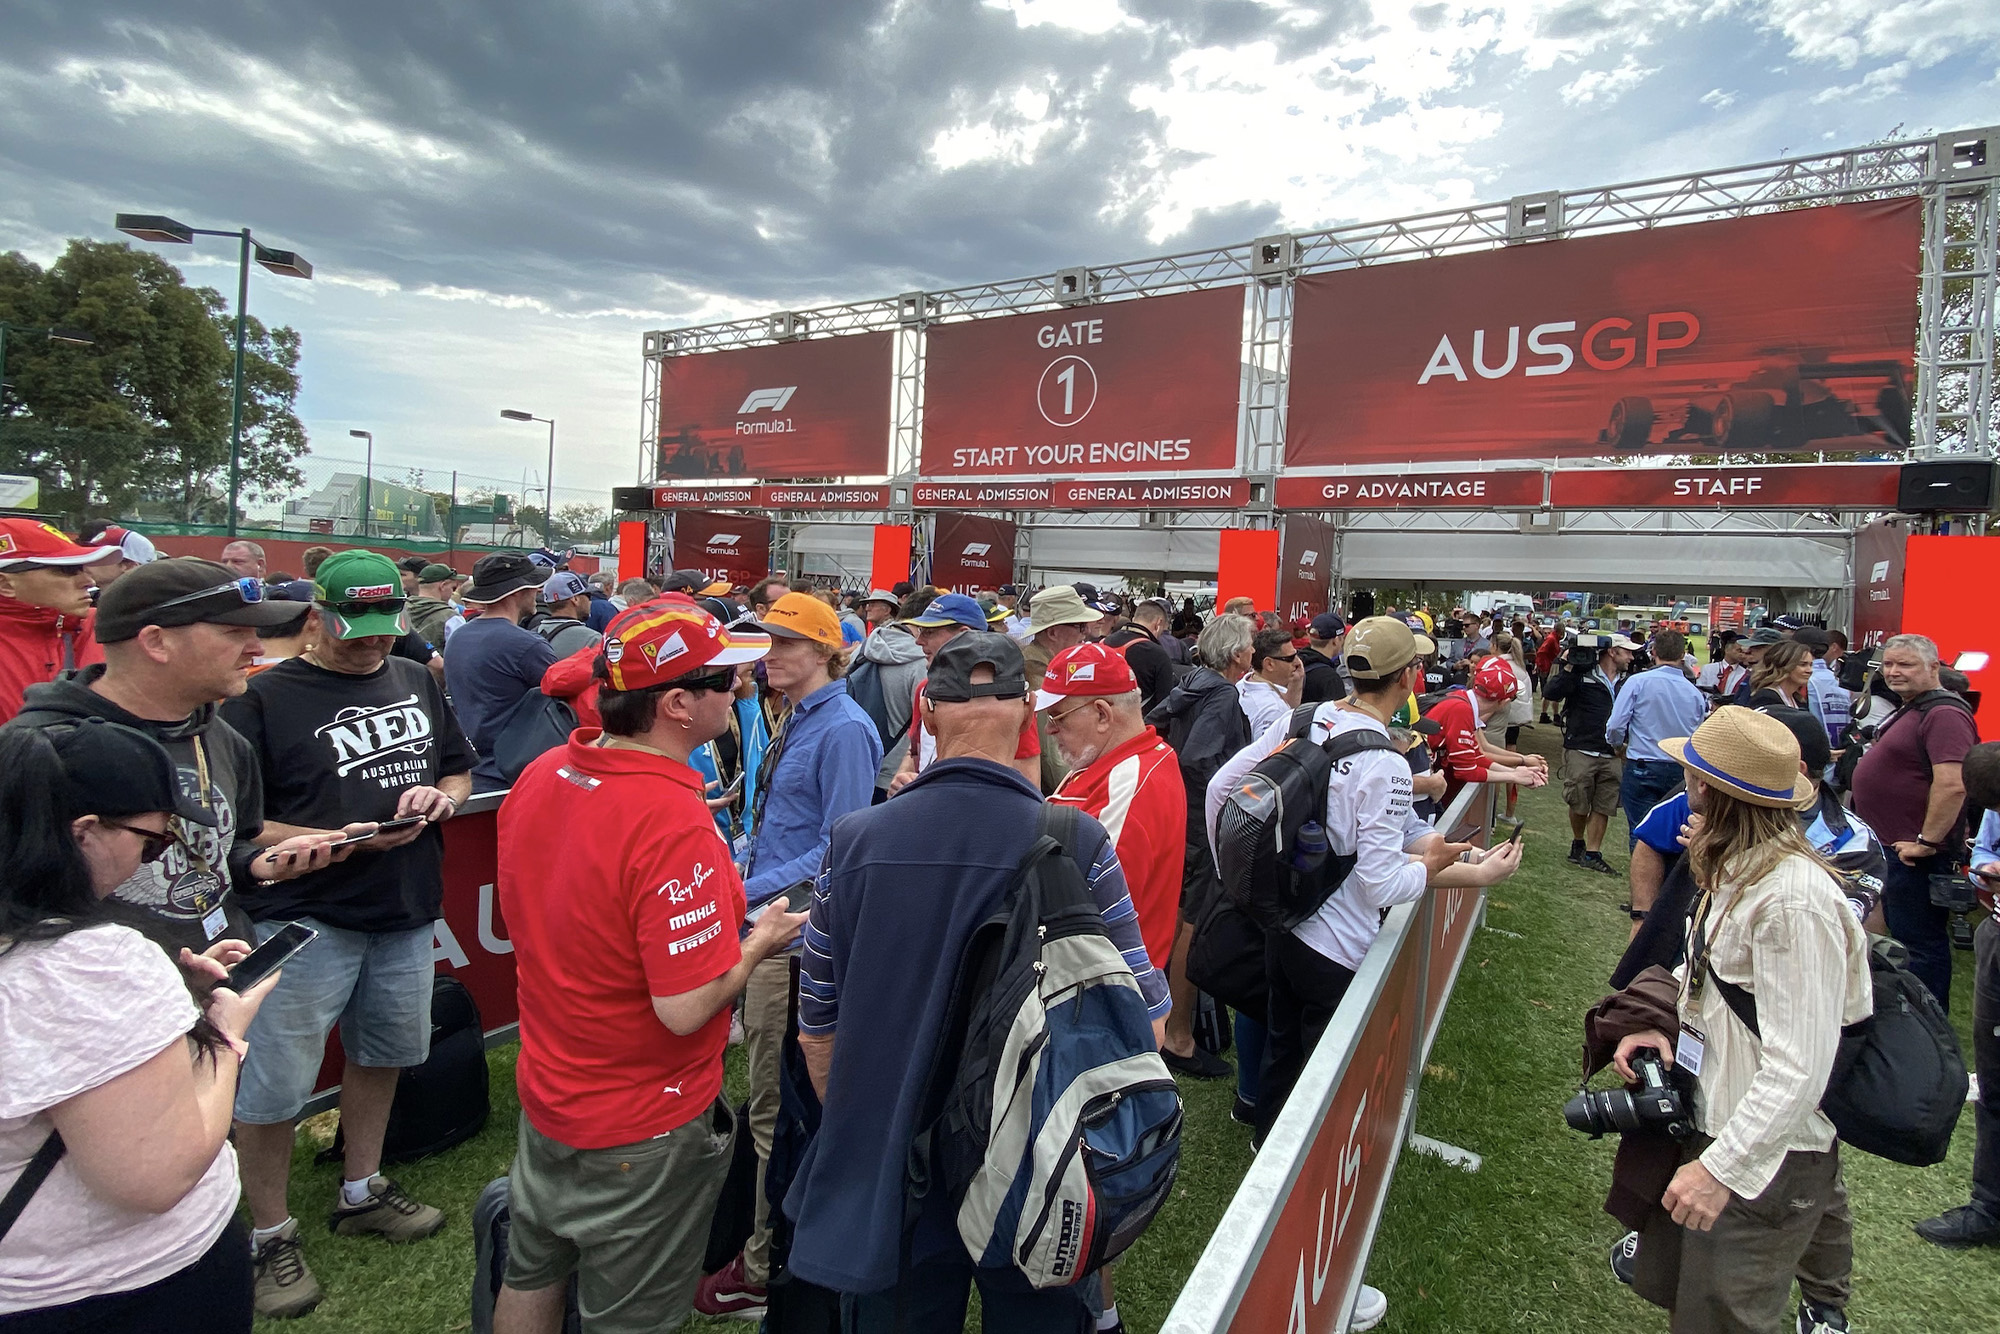 Spectators queue at Albert Park not knowing that the 2020 Australian Grand Prix has been cancelled